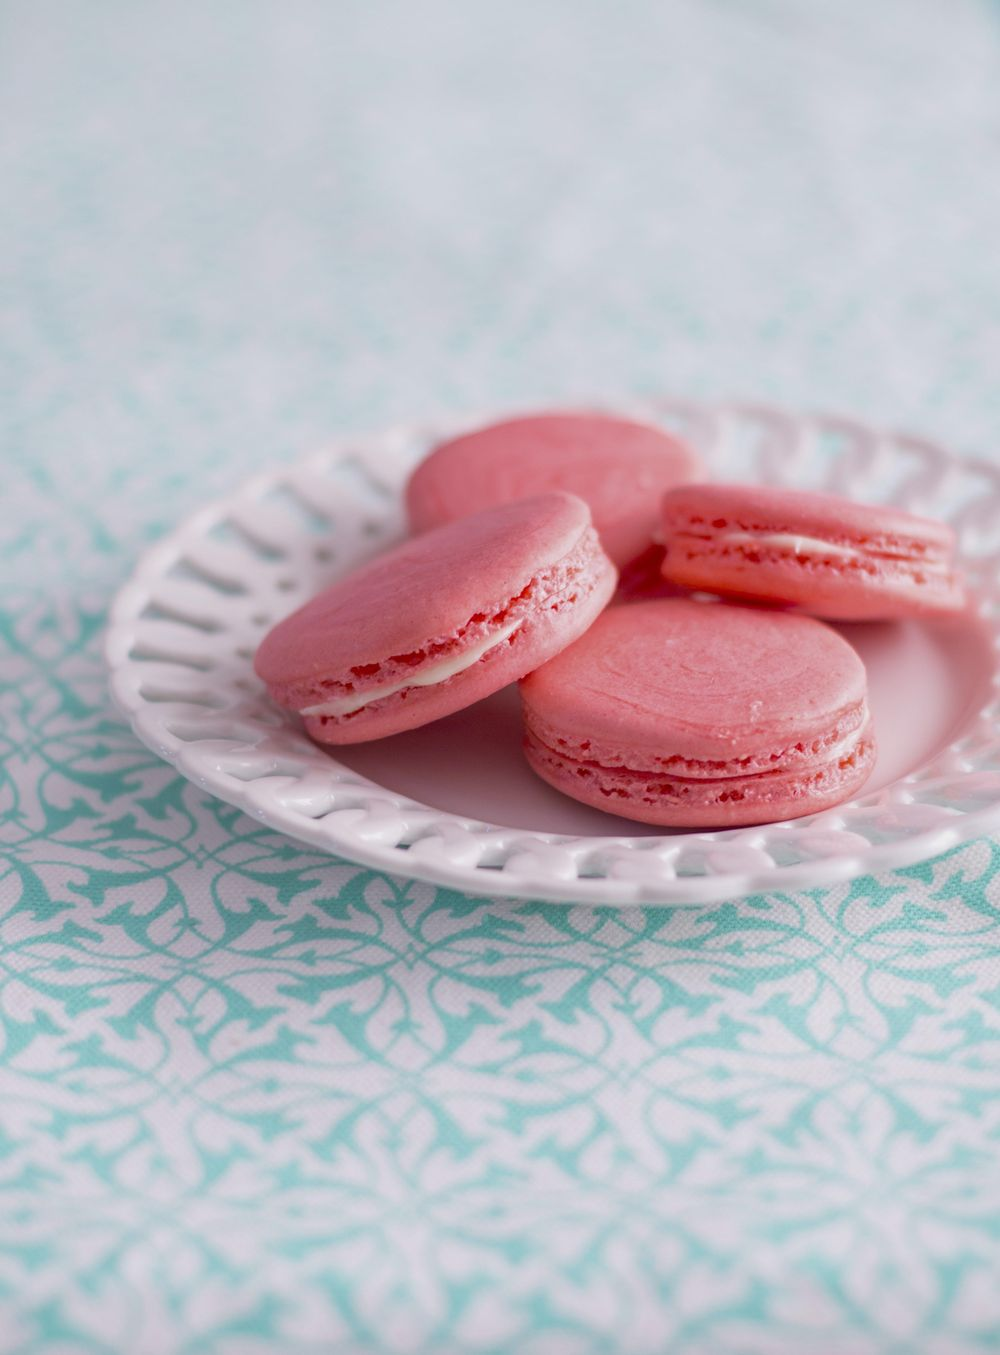 French Macarons - image 1 - student project